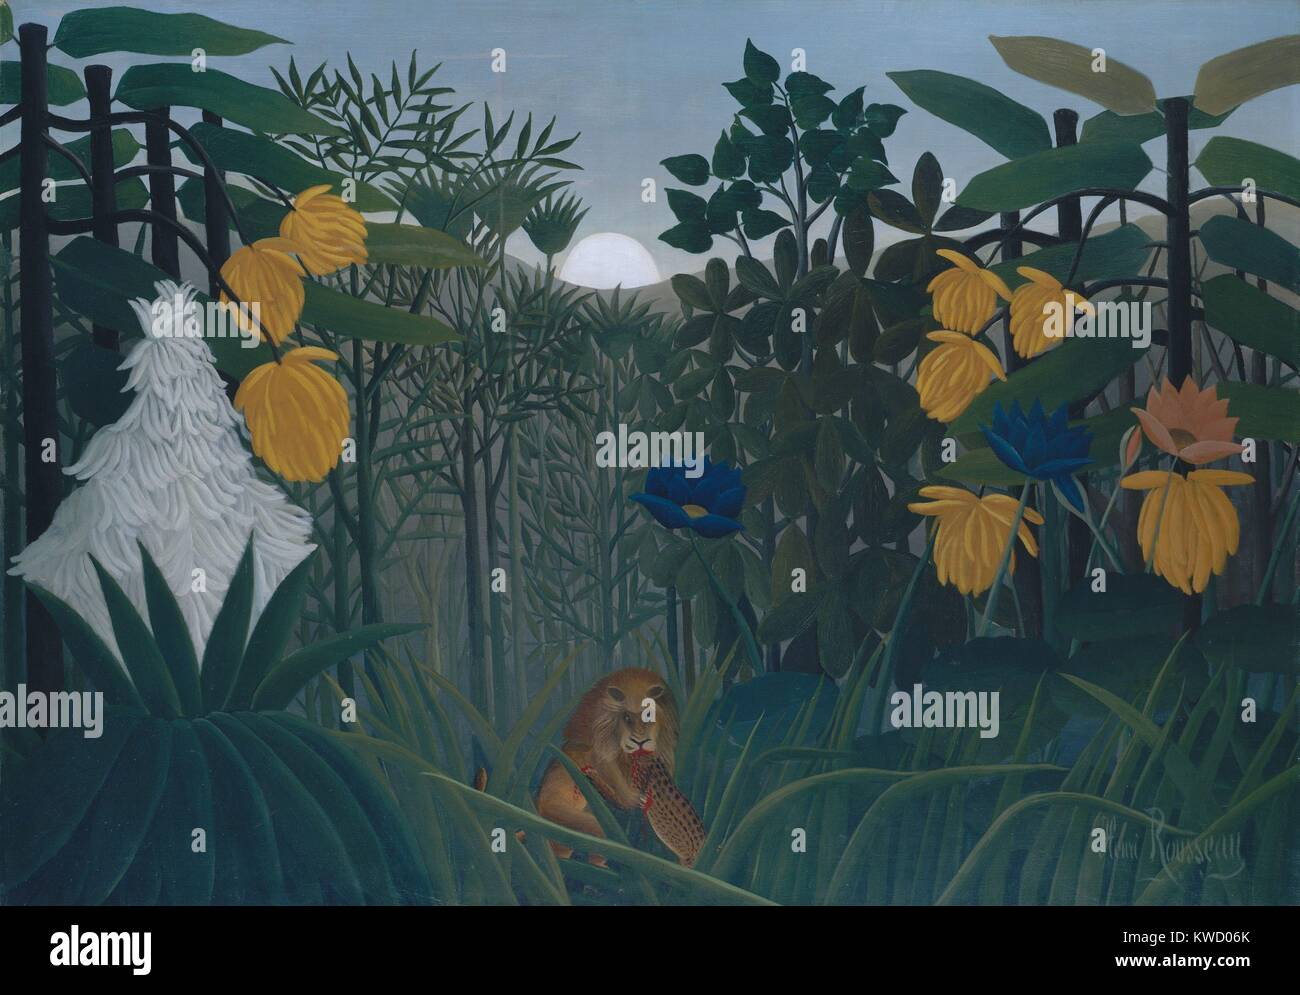 The Repast of the Lion, by Henri Rousseau, 1907, French Primitivism, painting, oil on canvas. The self-taught naive Stock Photo